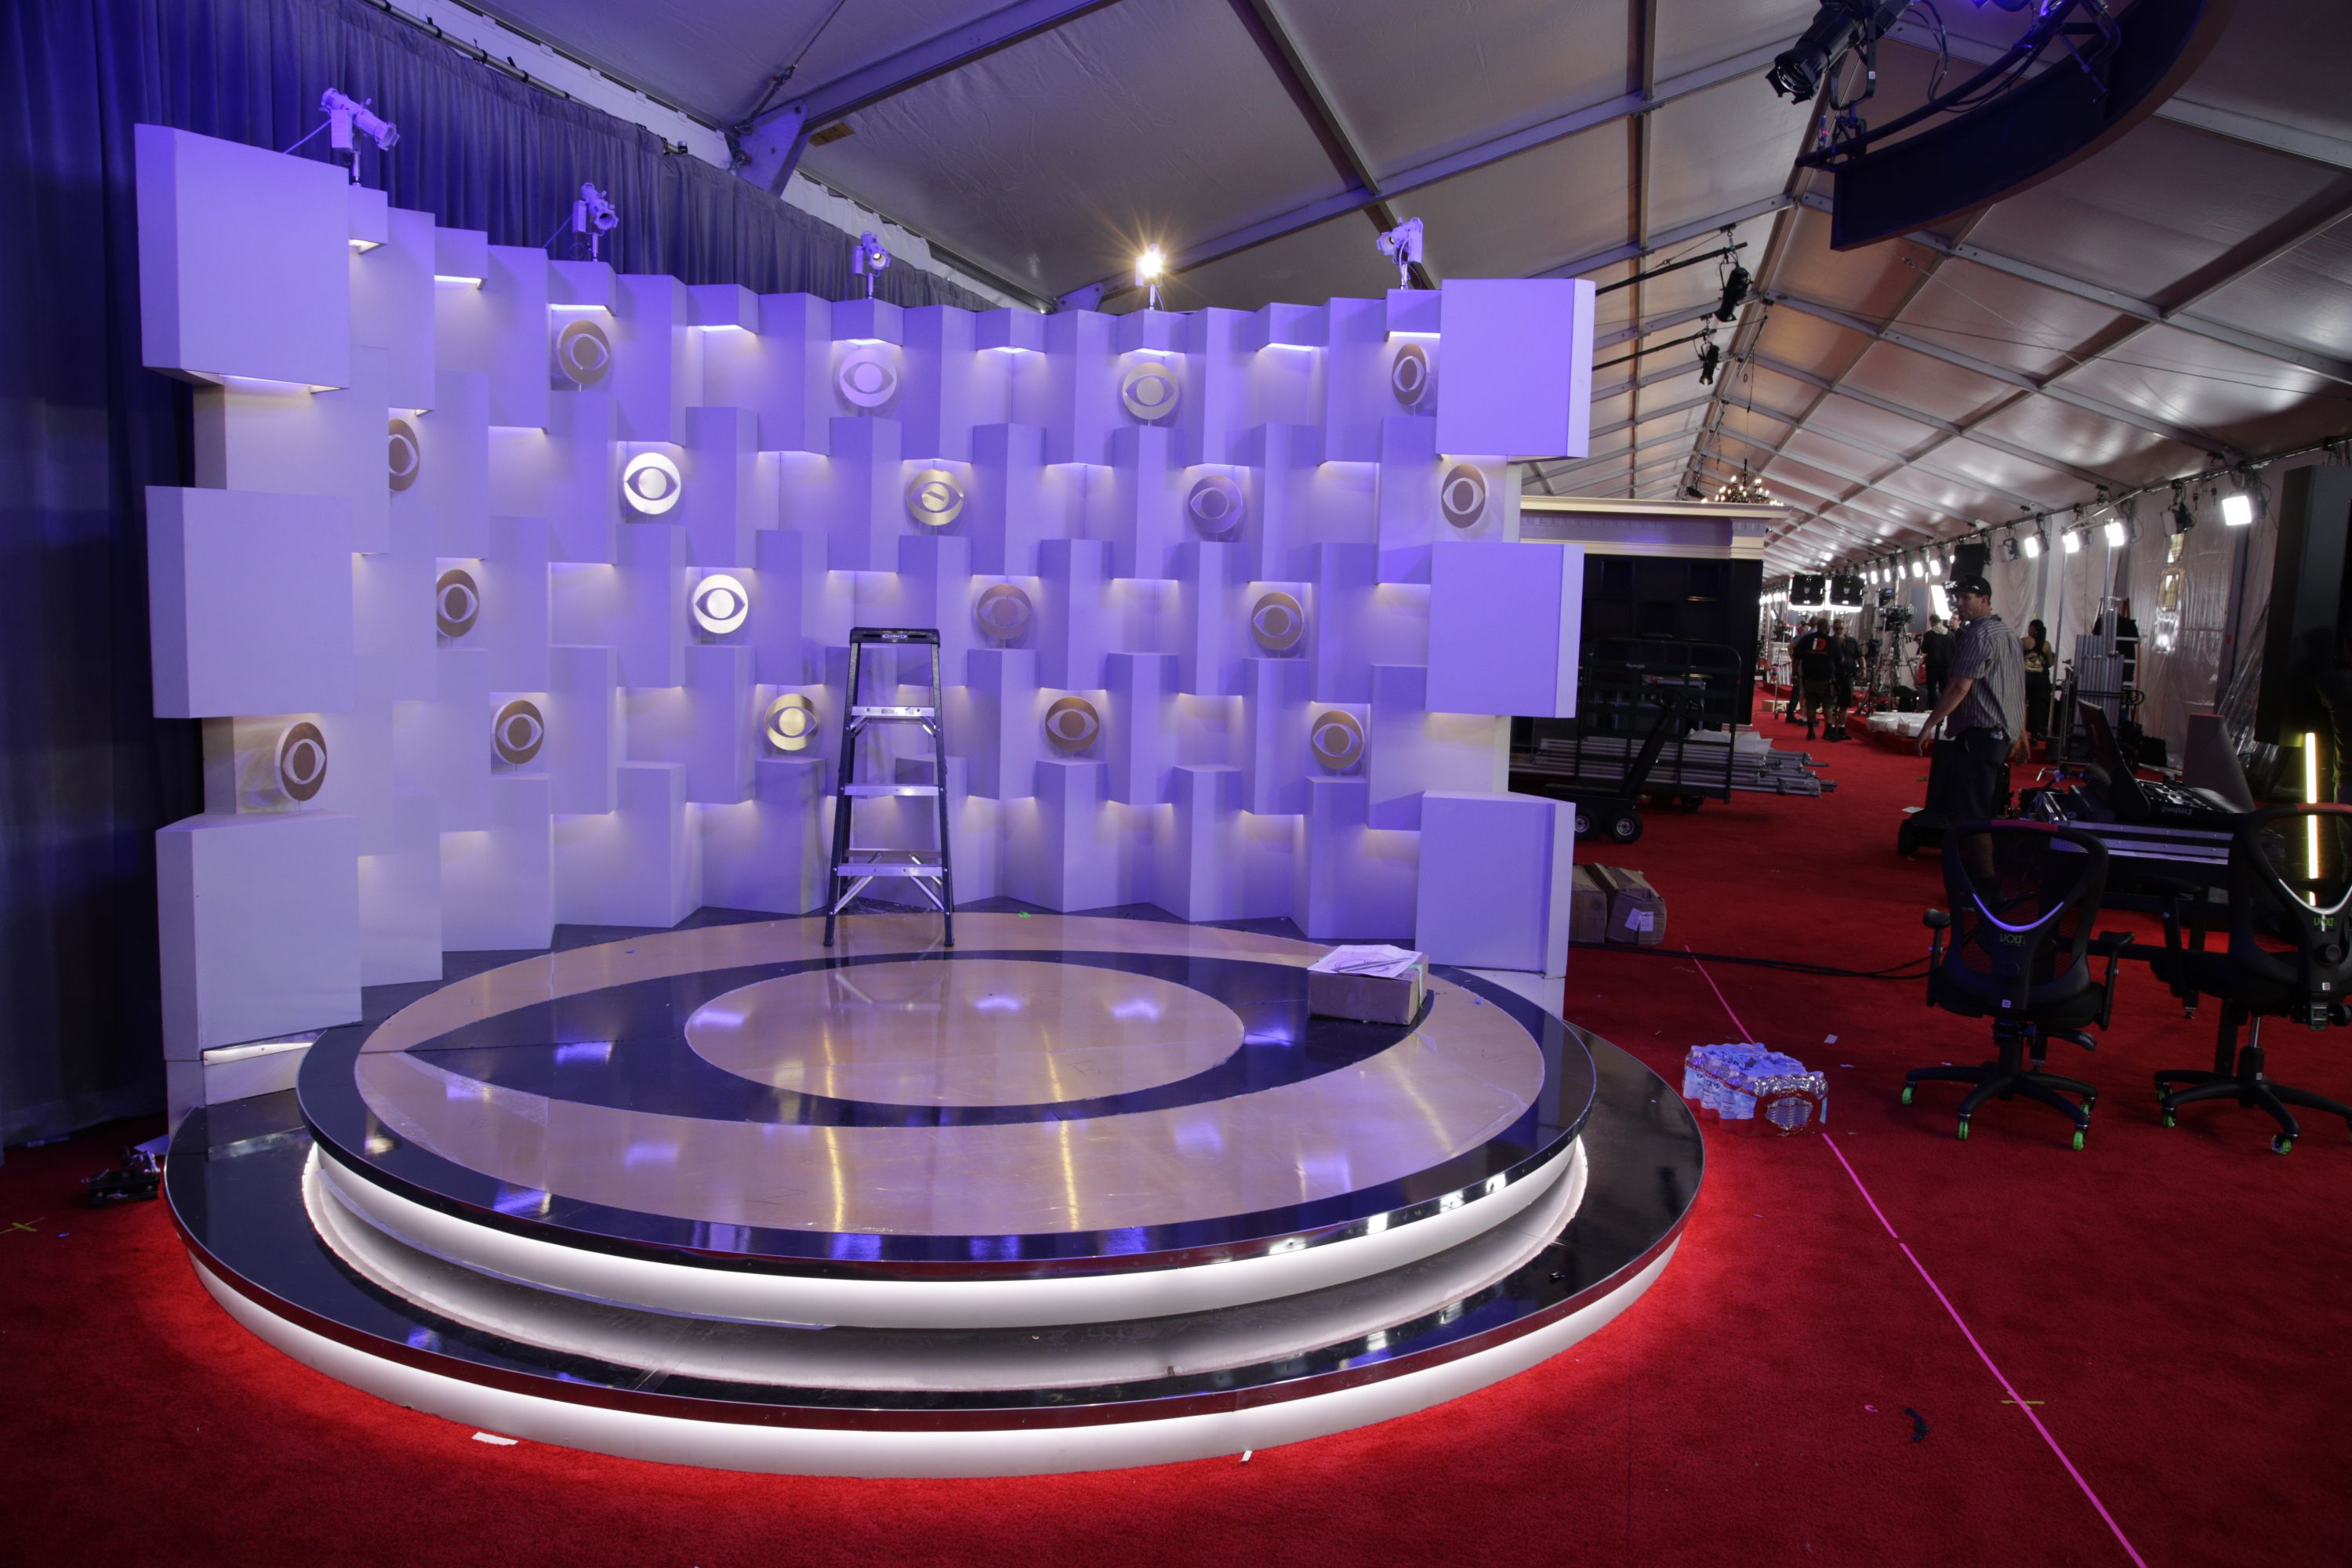 2020 Grammy Awards Red Carpet How To Watch The Coverage Online Without Cable Oregonlive Com